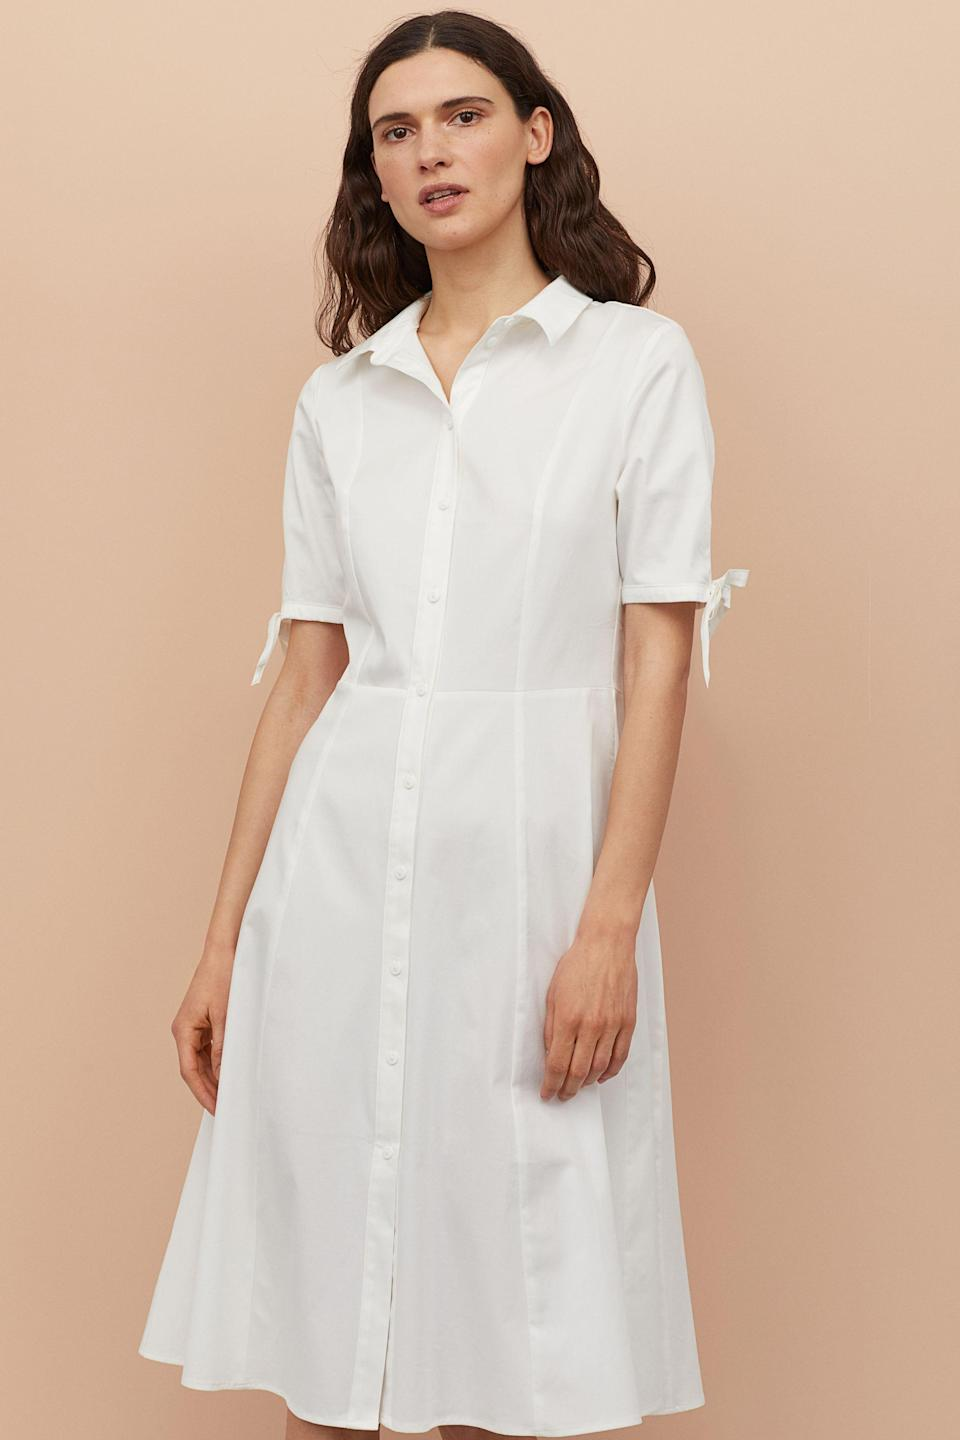 """<br> <br> <strong>H&M</strong> Cotton Satin Shirt Dress, $, available at <a href=""""https://go.skimresources.com/?id=30283X879131&url=https%3A%2F%2Fwww2.hm.com%2Fen_us%2Fproductpage.0743024003.html"""" rel=""""nofollow noopener"""" target=""""_blank"""" data-ylk=""""slk:H&M"""" class=""""link rapid-noclick-resp"""">H&M</a>"""